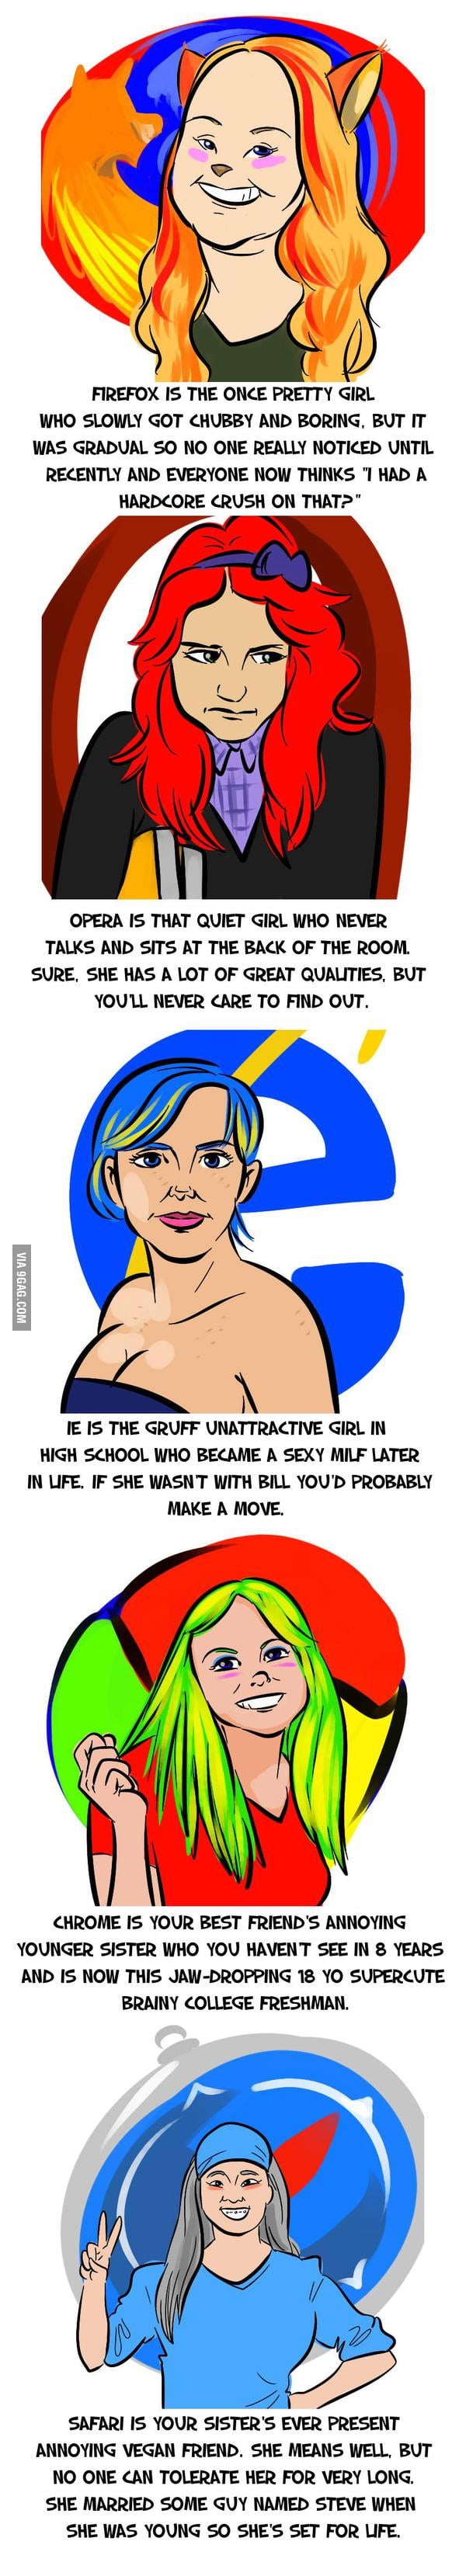 If web browsers were Girls.